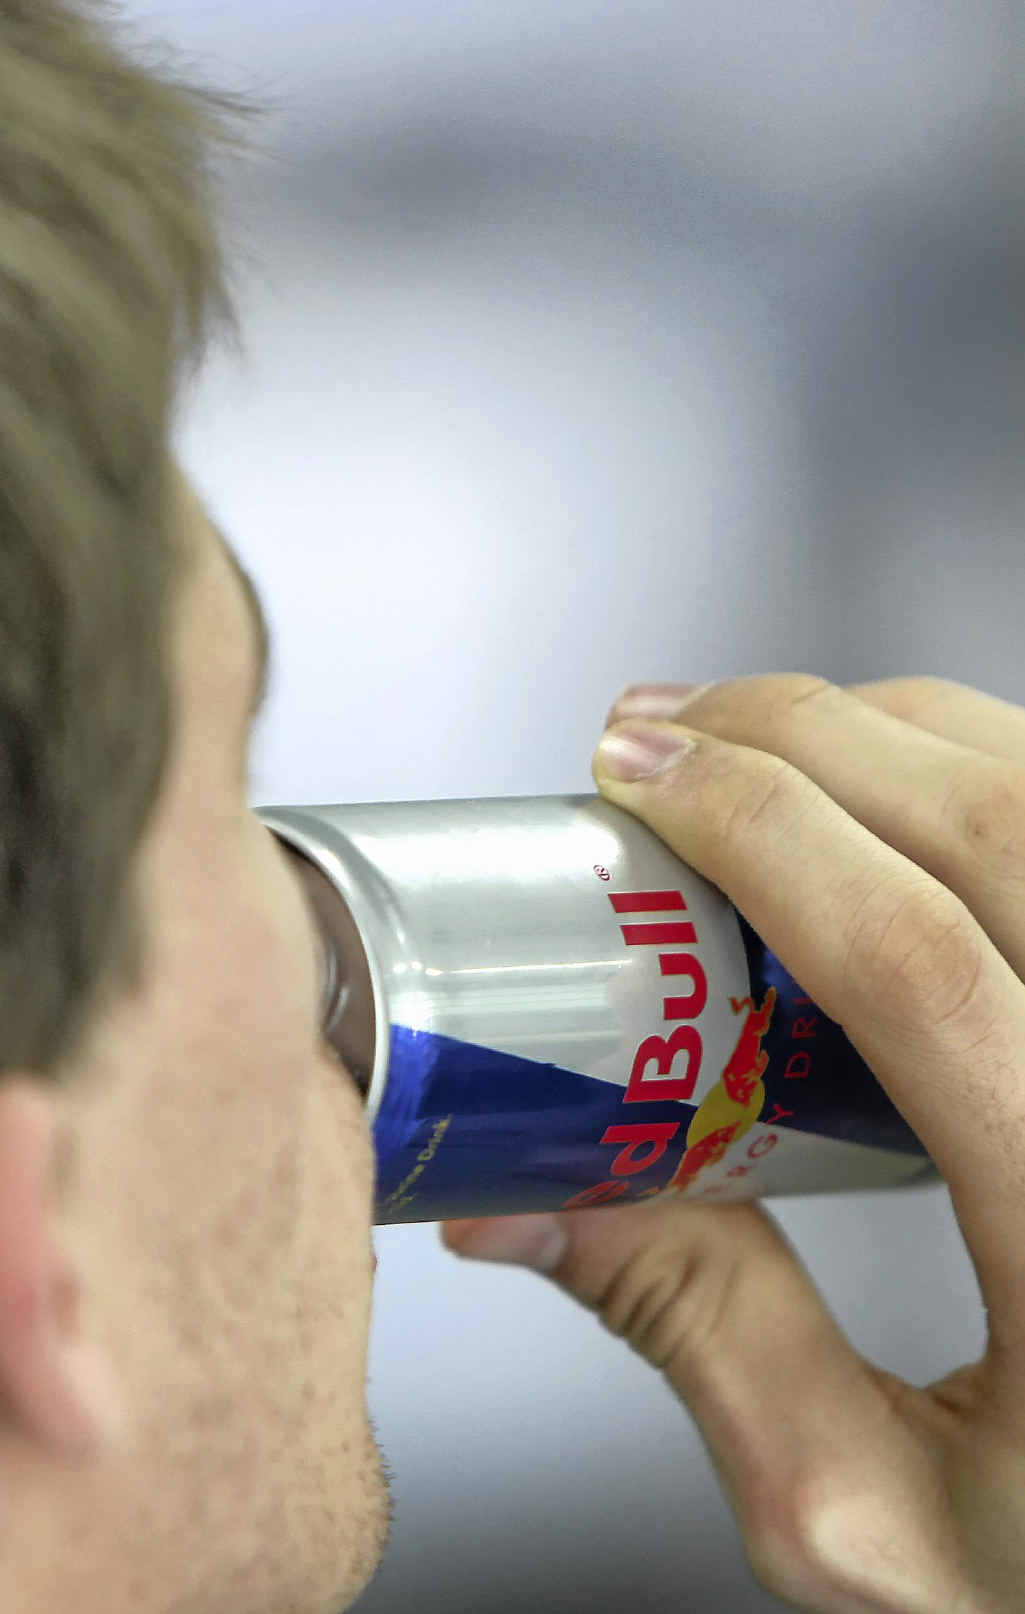 Mackay company Mastermyne is educating its employees about the effects energy drinks can have.